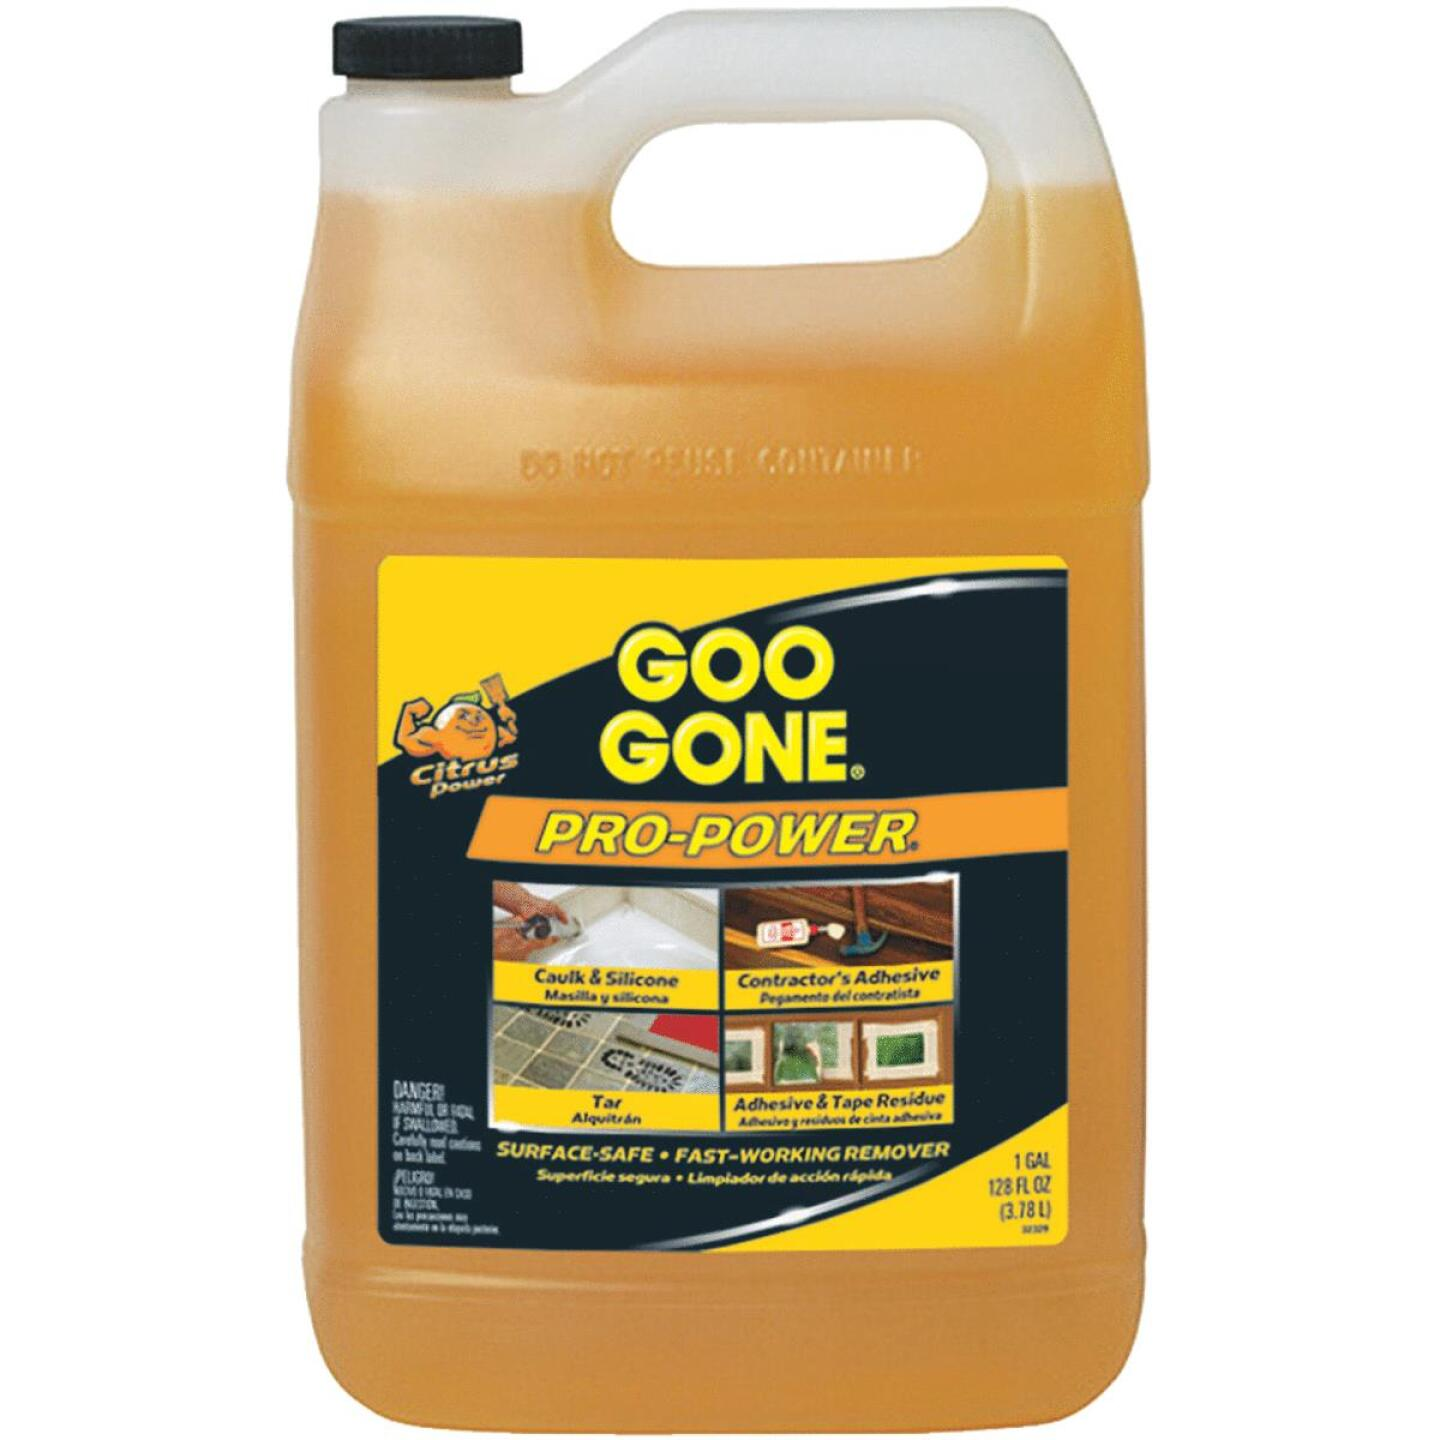 Goo Gone 1 Gal. Pro-Power Adhesive Remover Image 339